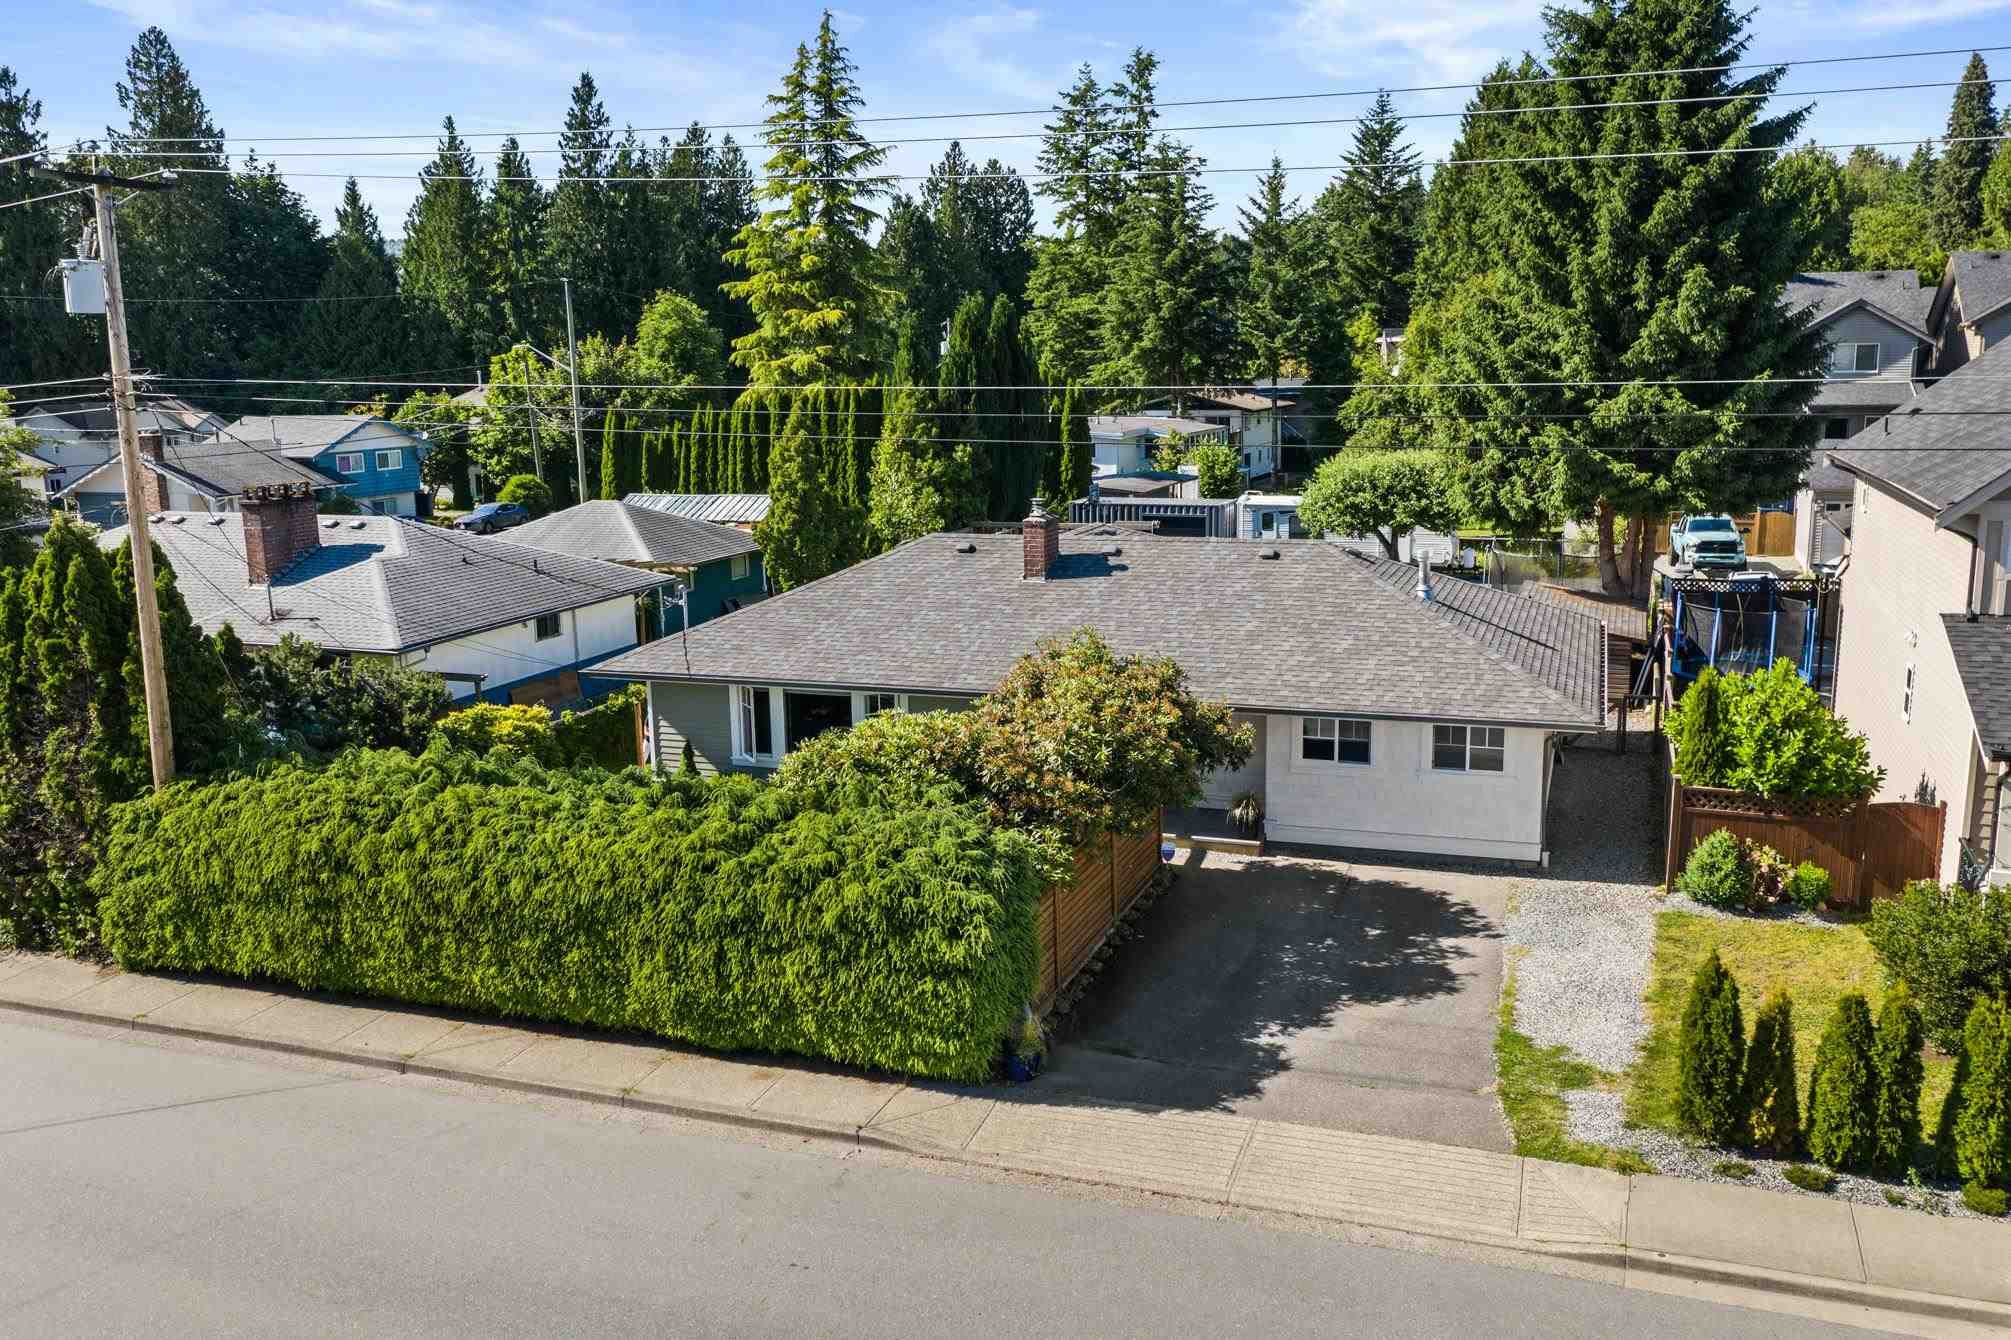 Photo 1: Photos: 32459 7TH Avenue in Mission: Mission BC House for sale : MLS®# R2595099